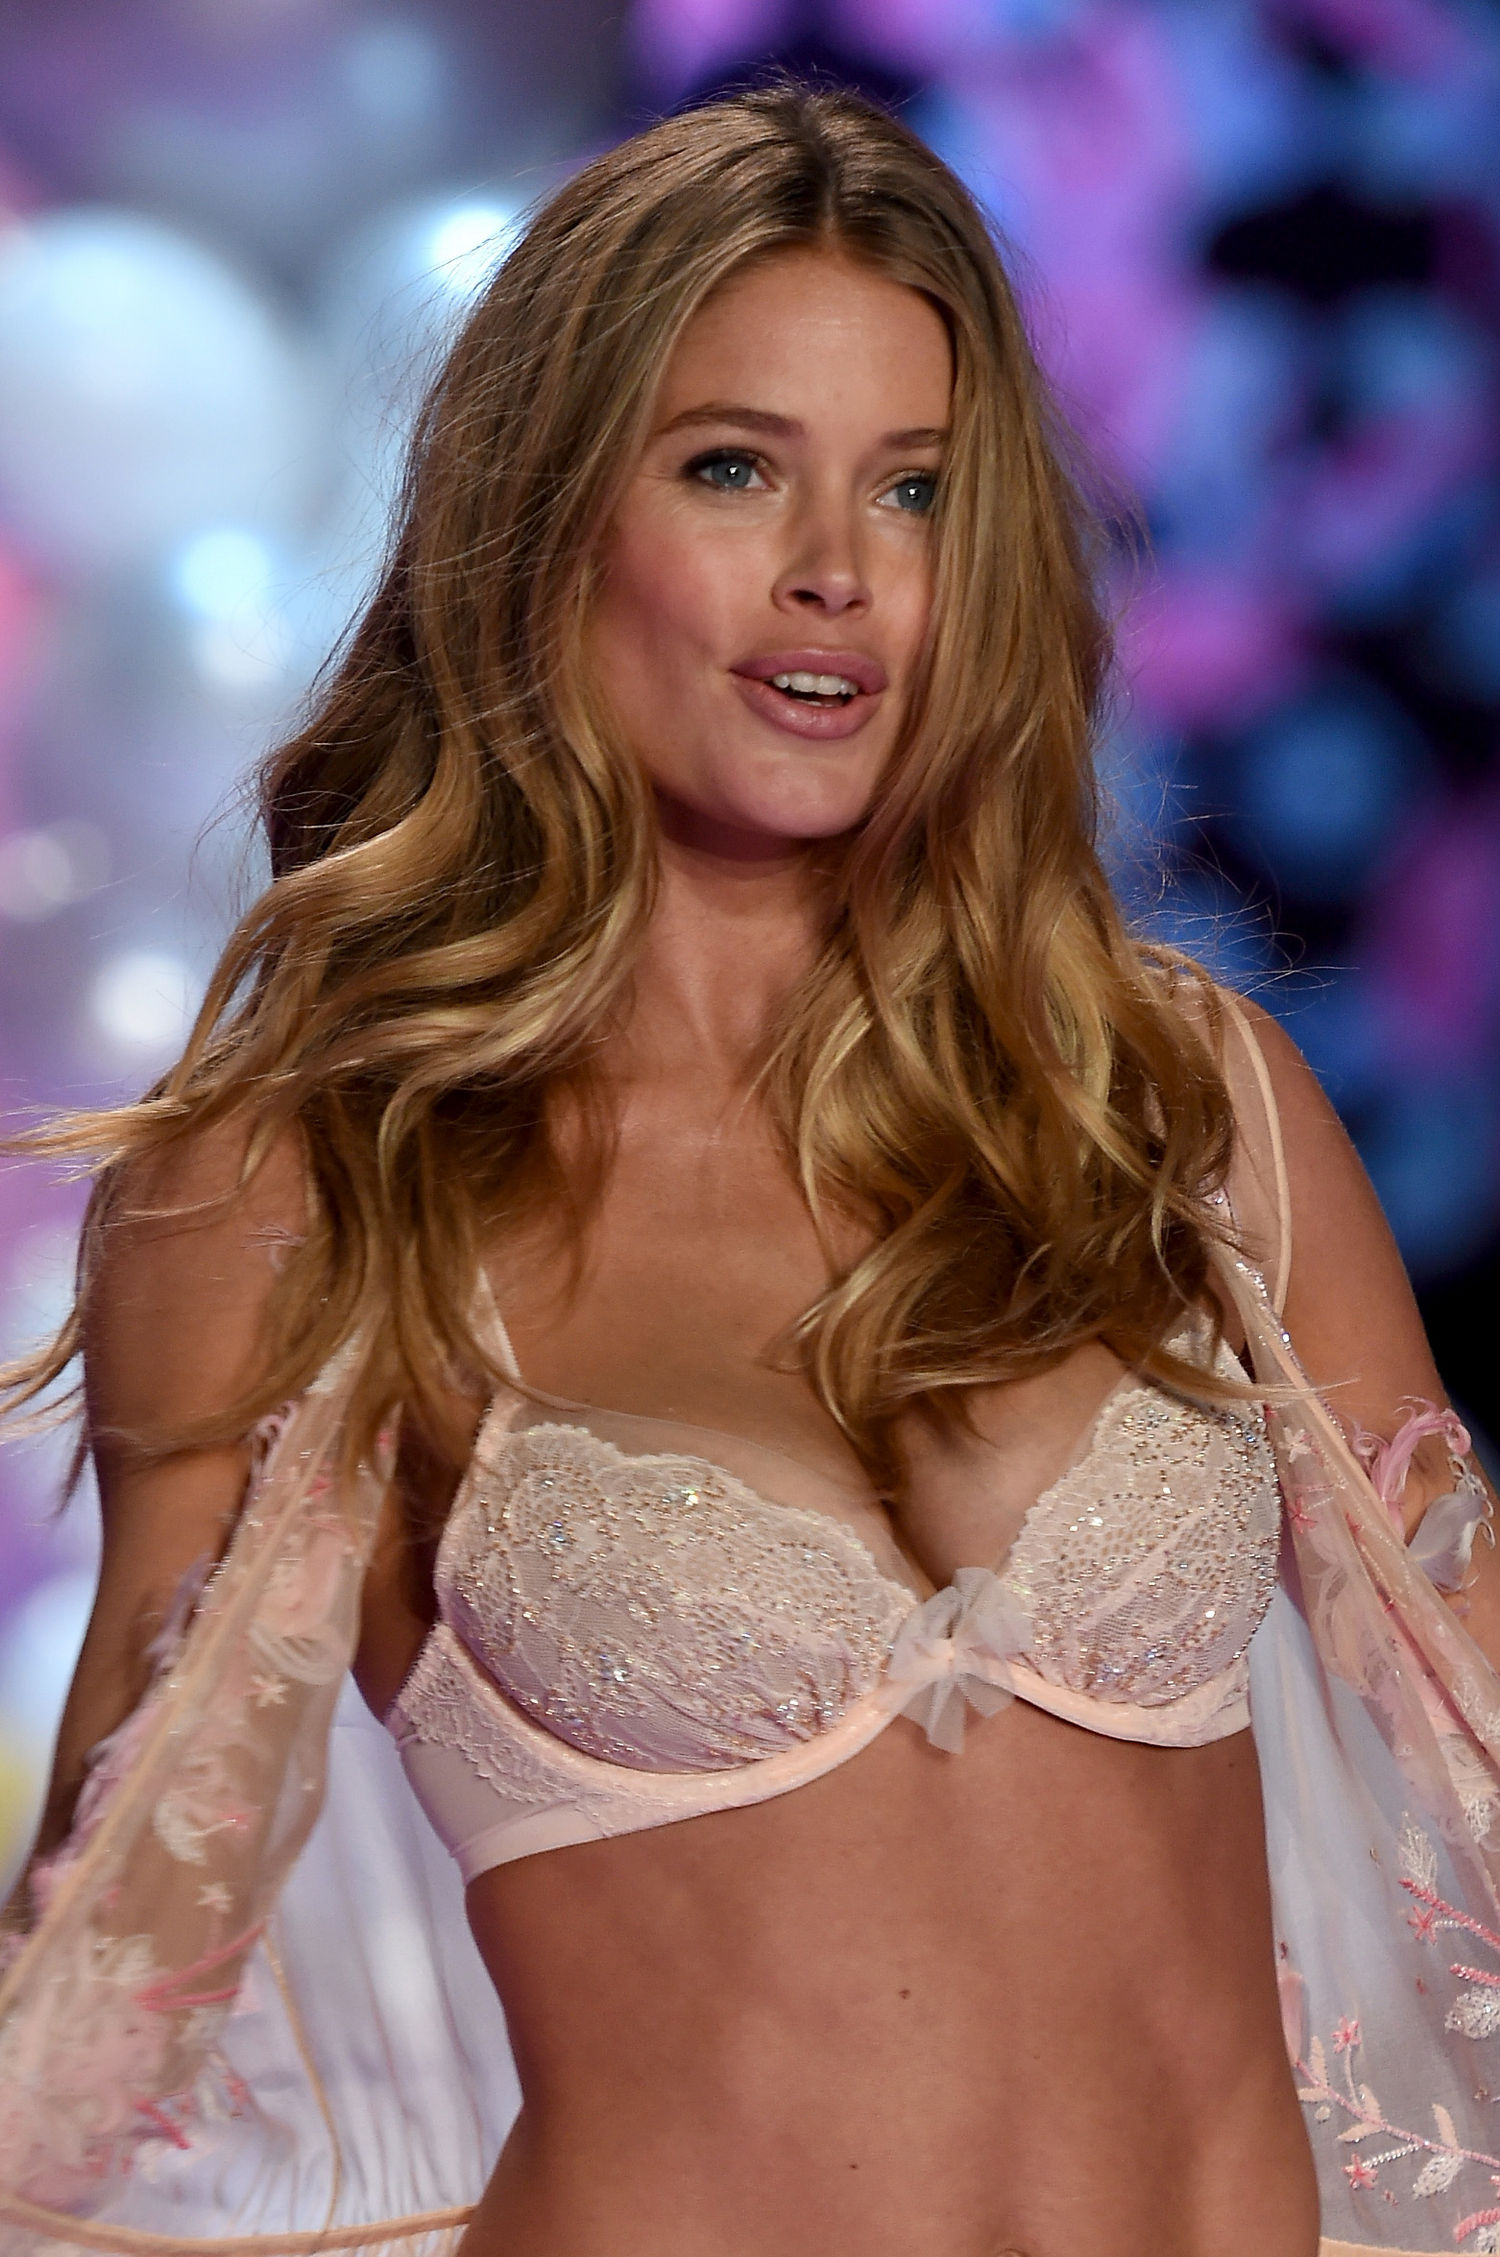 Doutzen Kroes Backgrounds, Compatible - PC, Mobile, Gadgets| 1500x2257 px